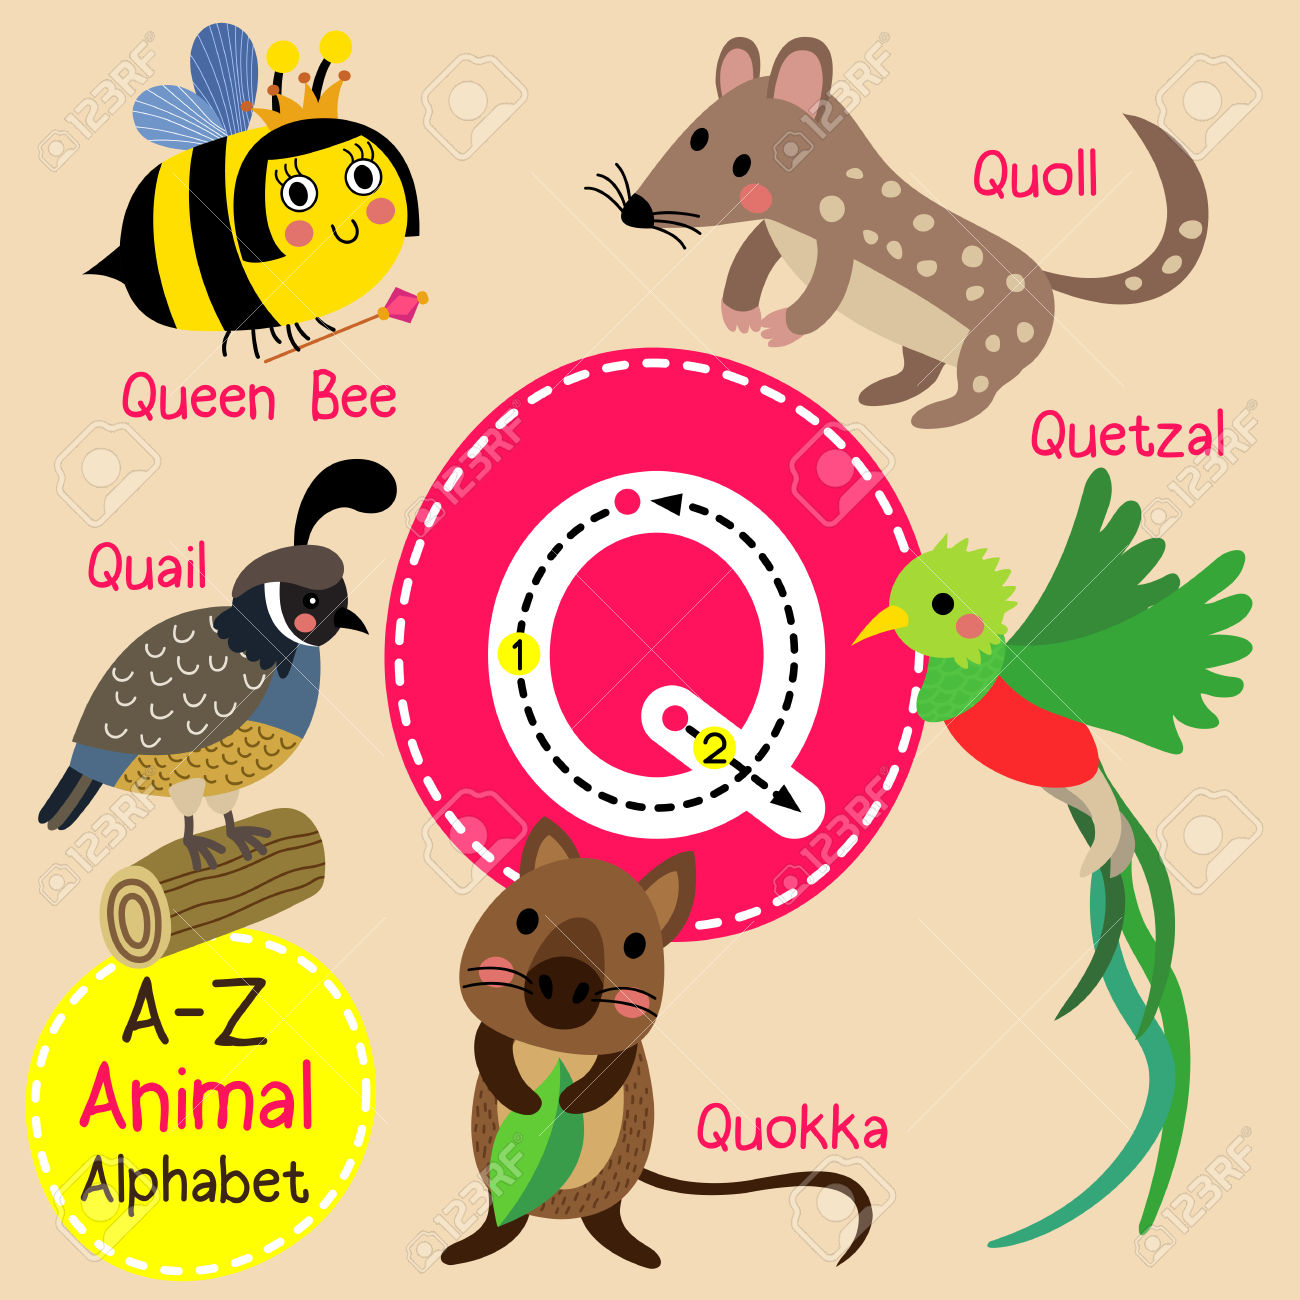 Queen of england cute clipart picture free download Q Letter Tracing. Quail. Queen Bee. Quetzal. Quokka. Quoll. Cute ... picture free download